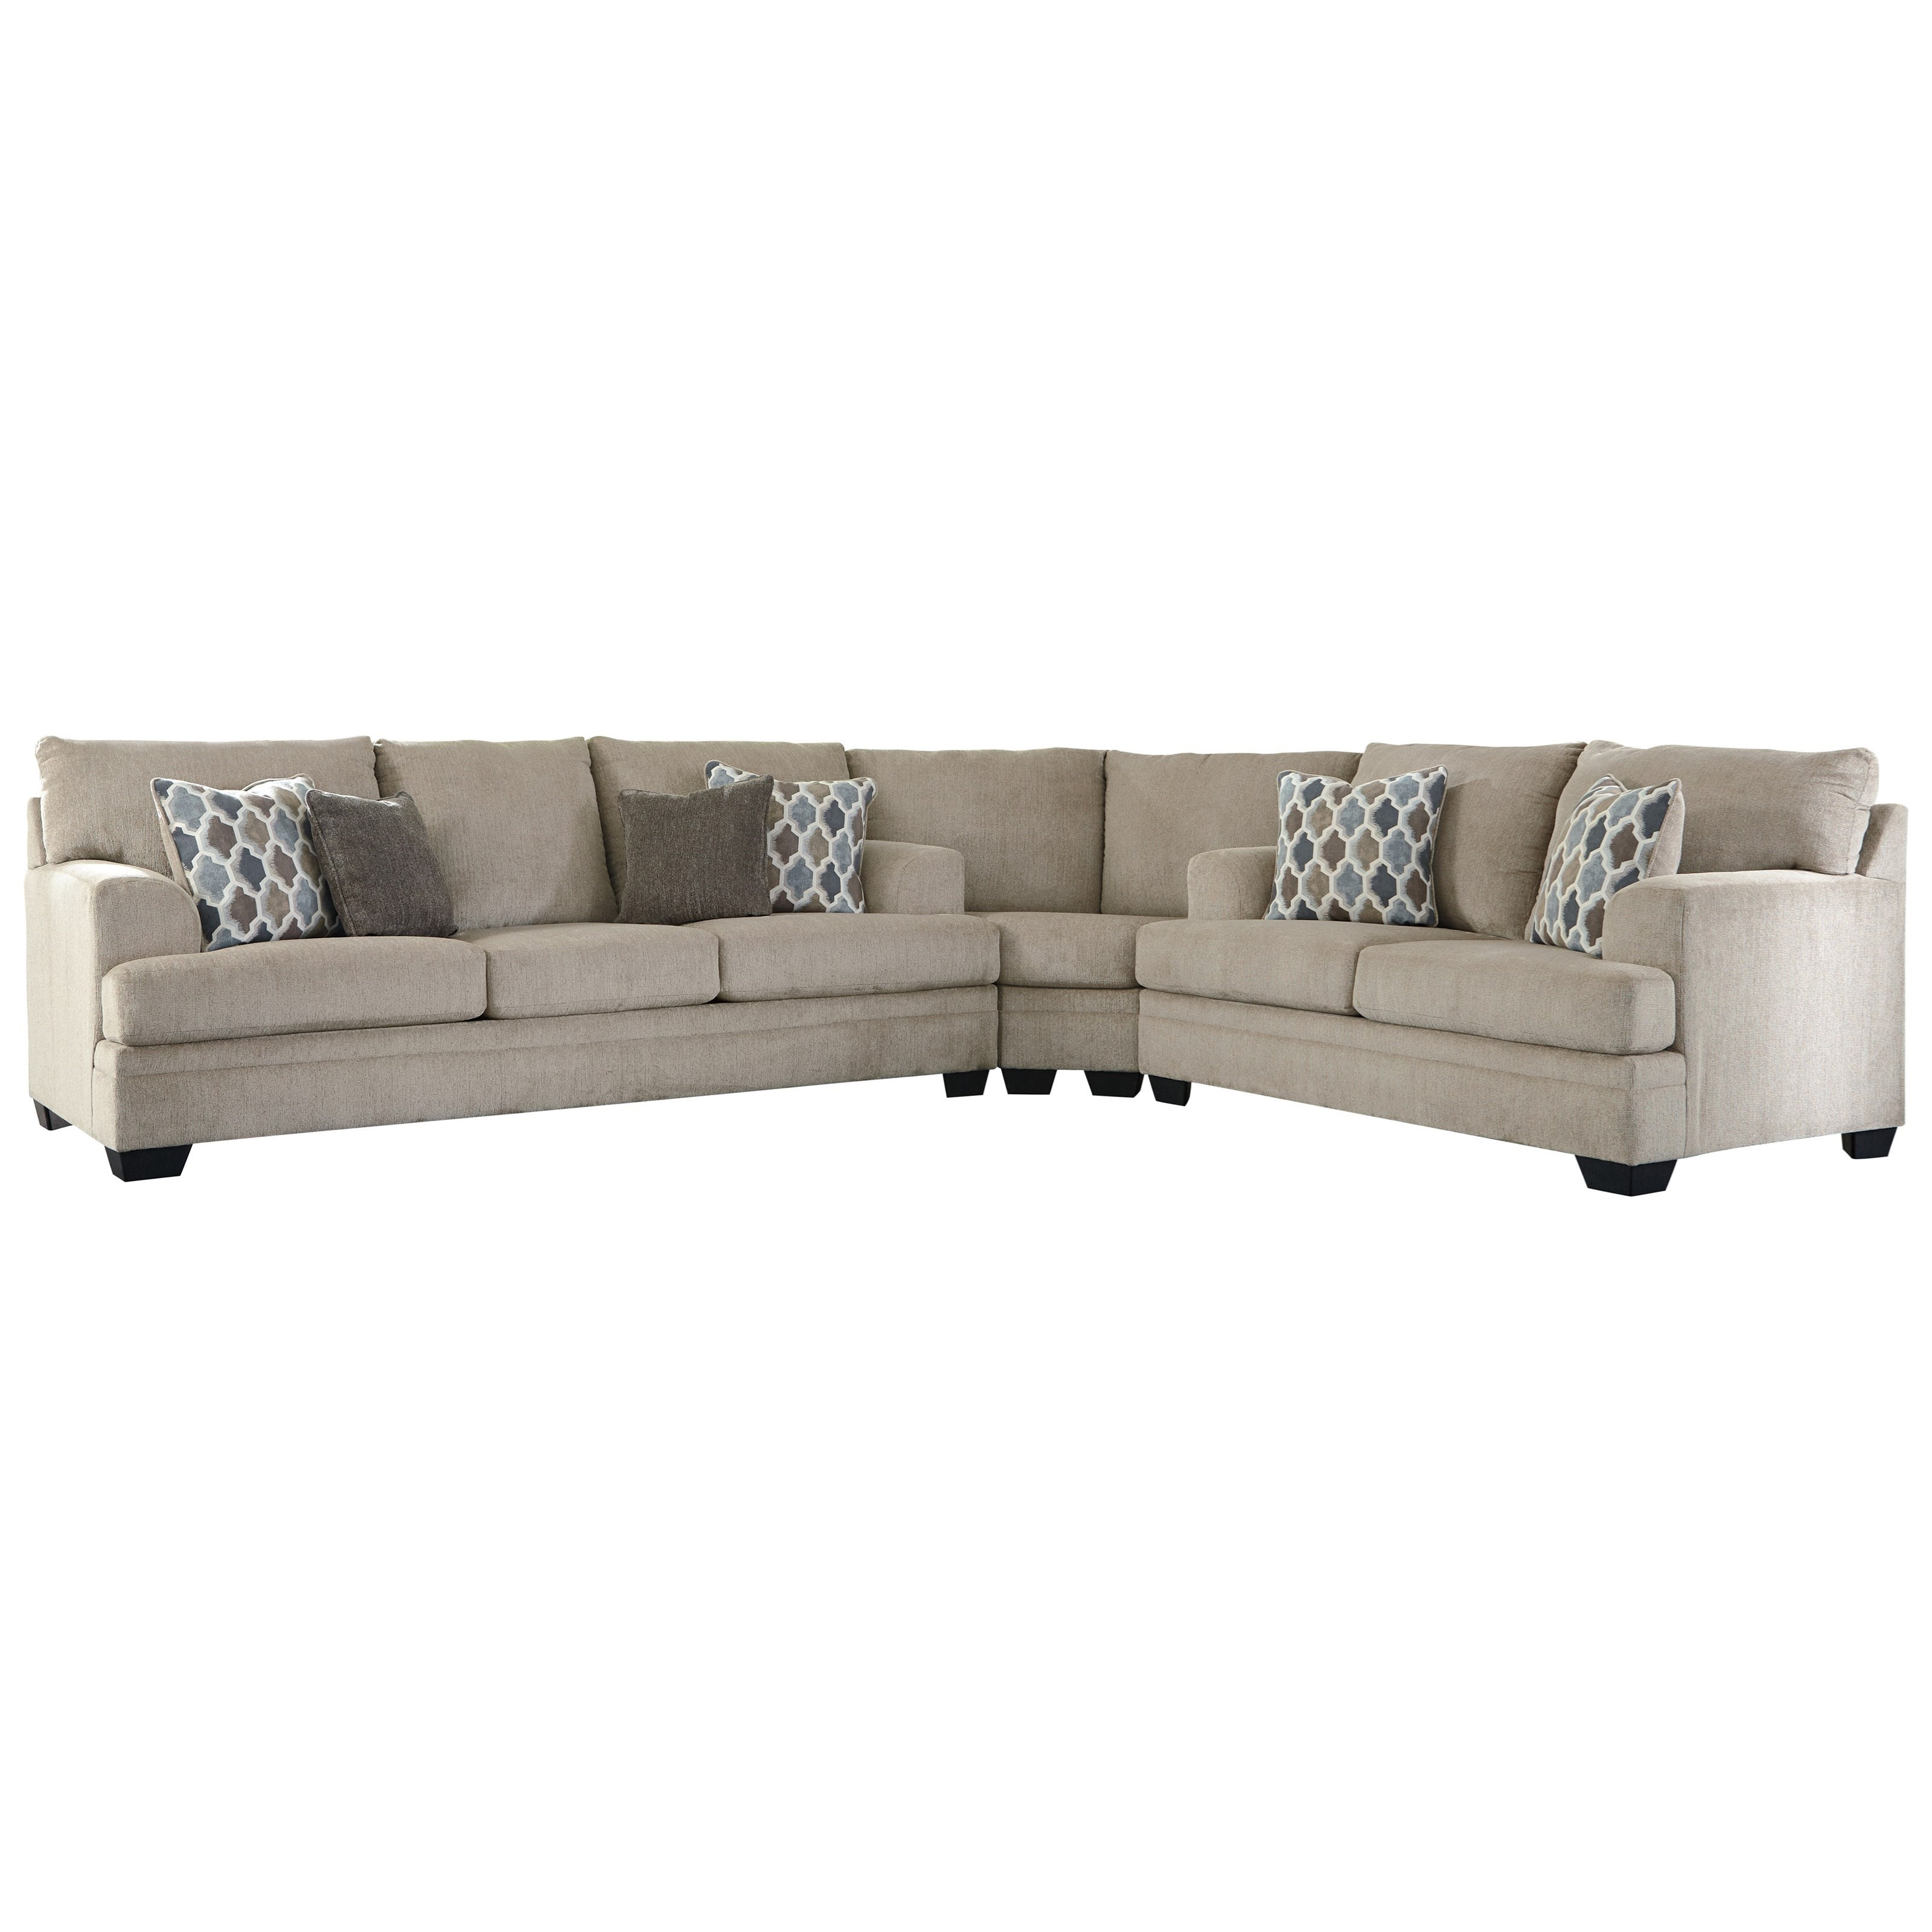 Dorsten 3-Piece Sectional by Ashley (Signature Design) at Johnny Janosik